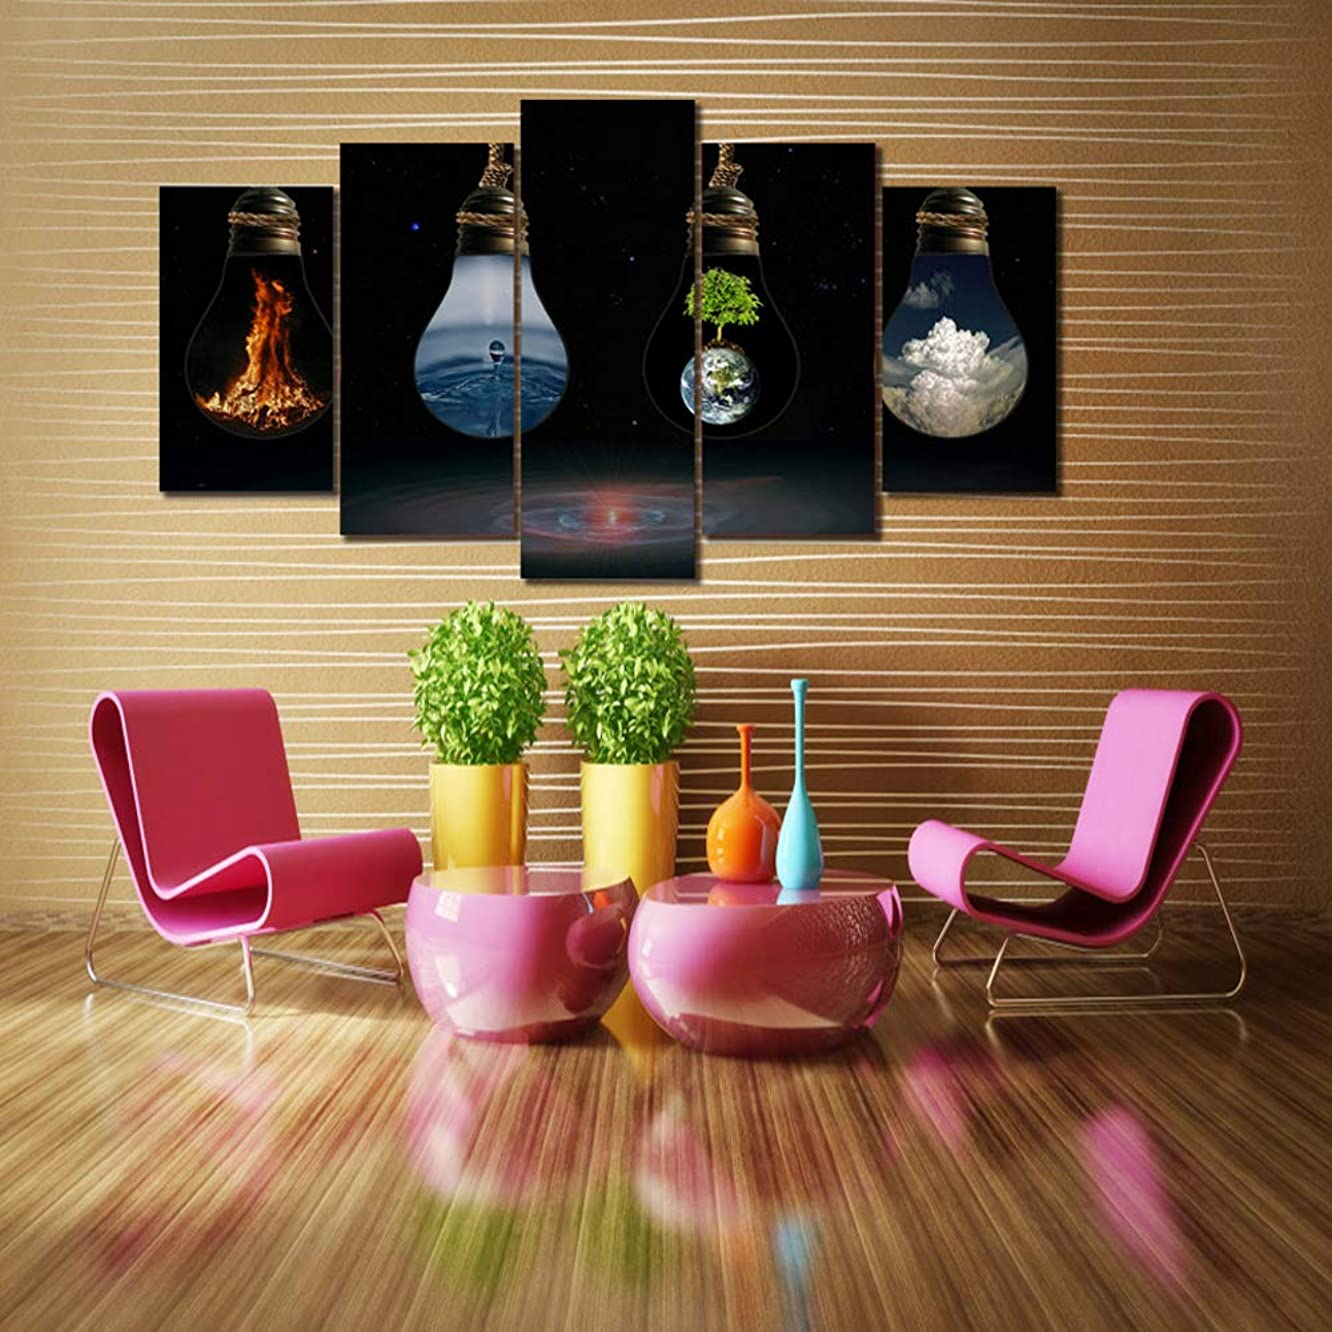 PEACOCK JEWELS [Large] Premium Quality Canvas Printed Wall Art Poster 5 Pieces / 5 Pannel Wall Decor Painting, Home Decor Pictures - Stretched